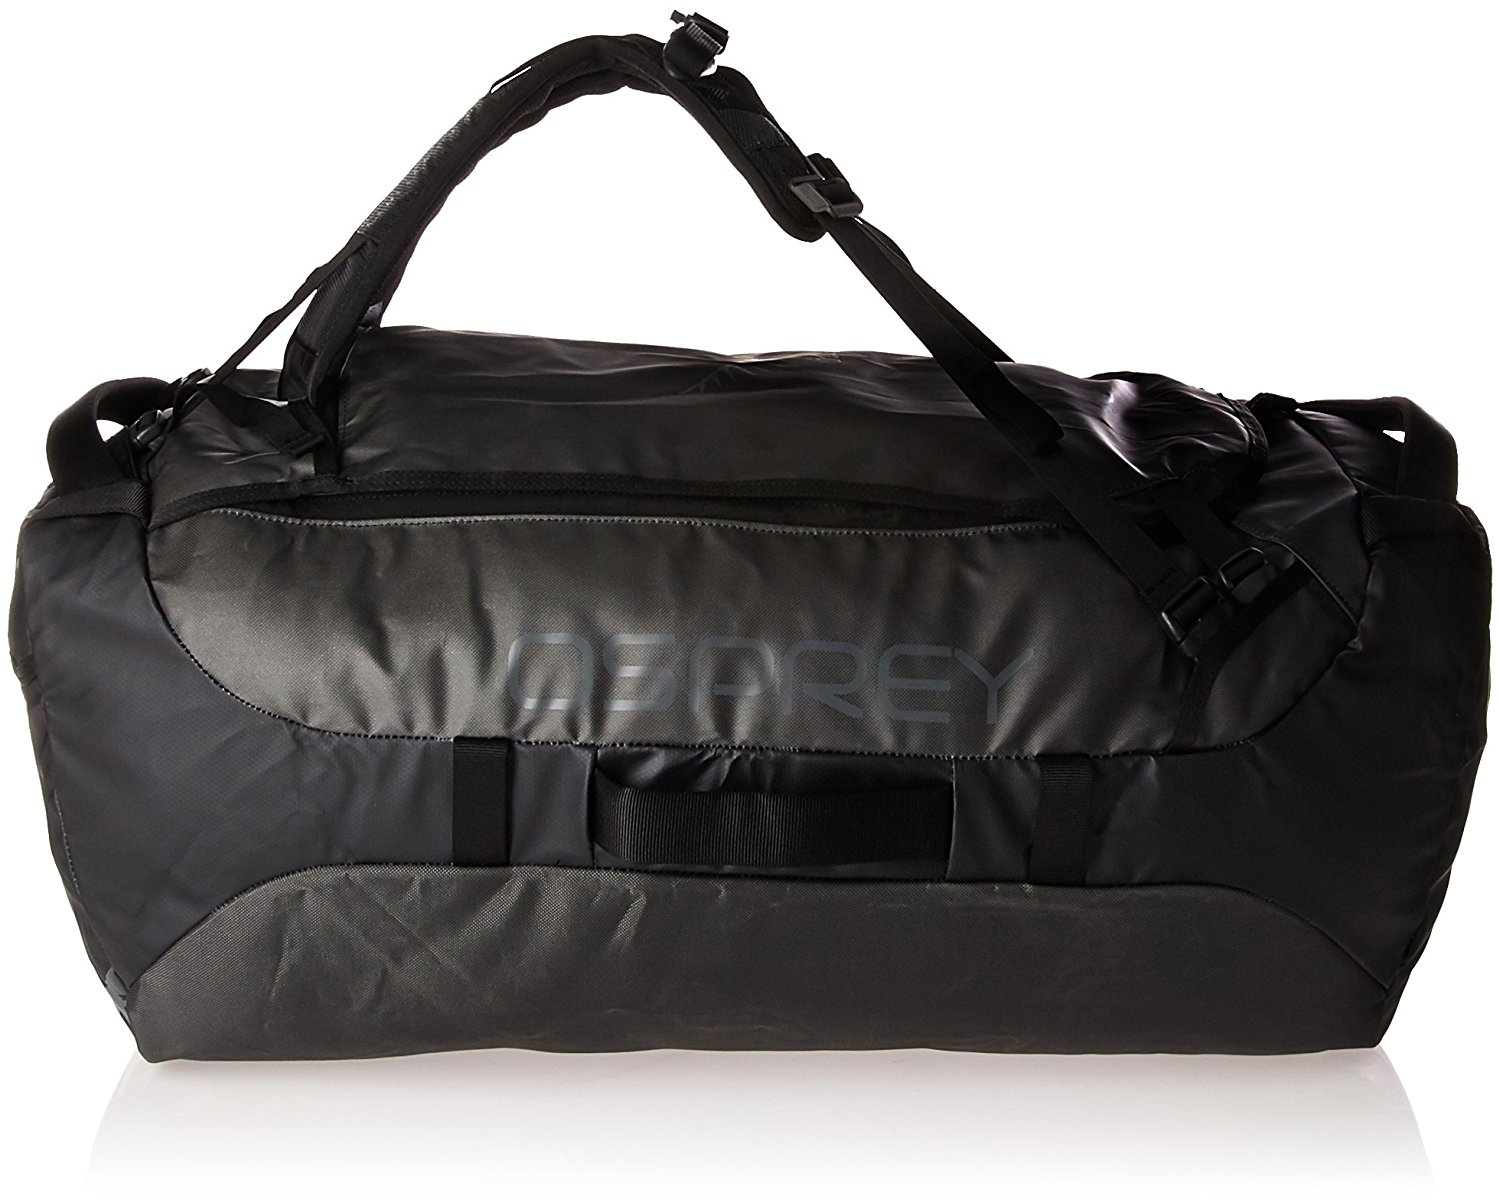 Osprey Packungen Transporter 95 Expedition Duffel